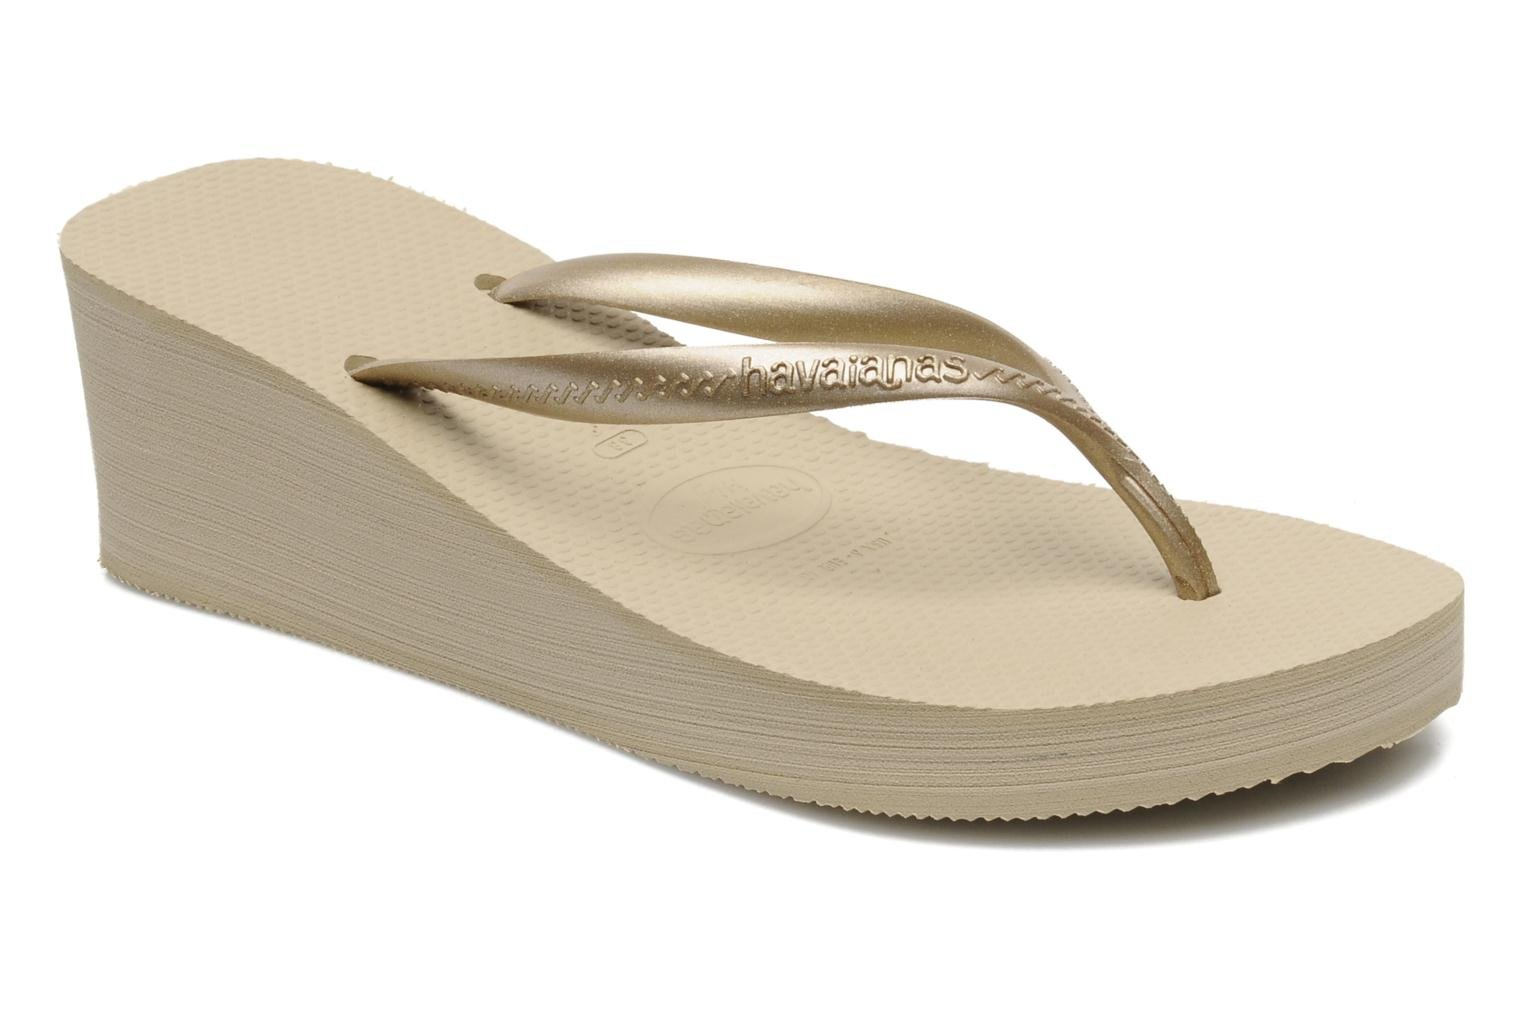 Havaianas High Fashion Flip Flops In Bronze And Gold At